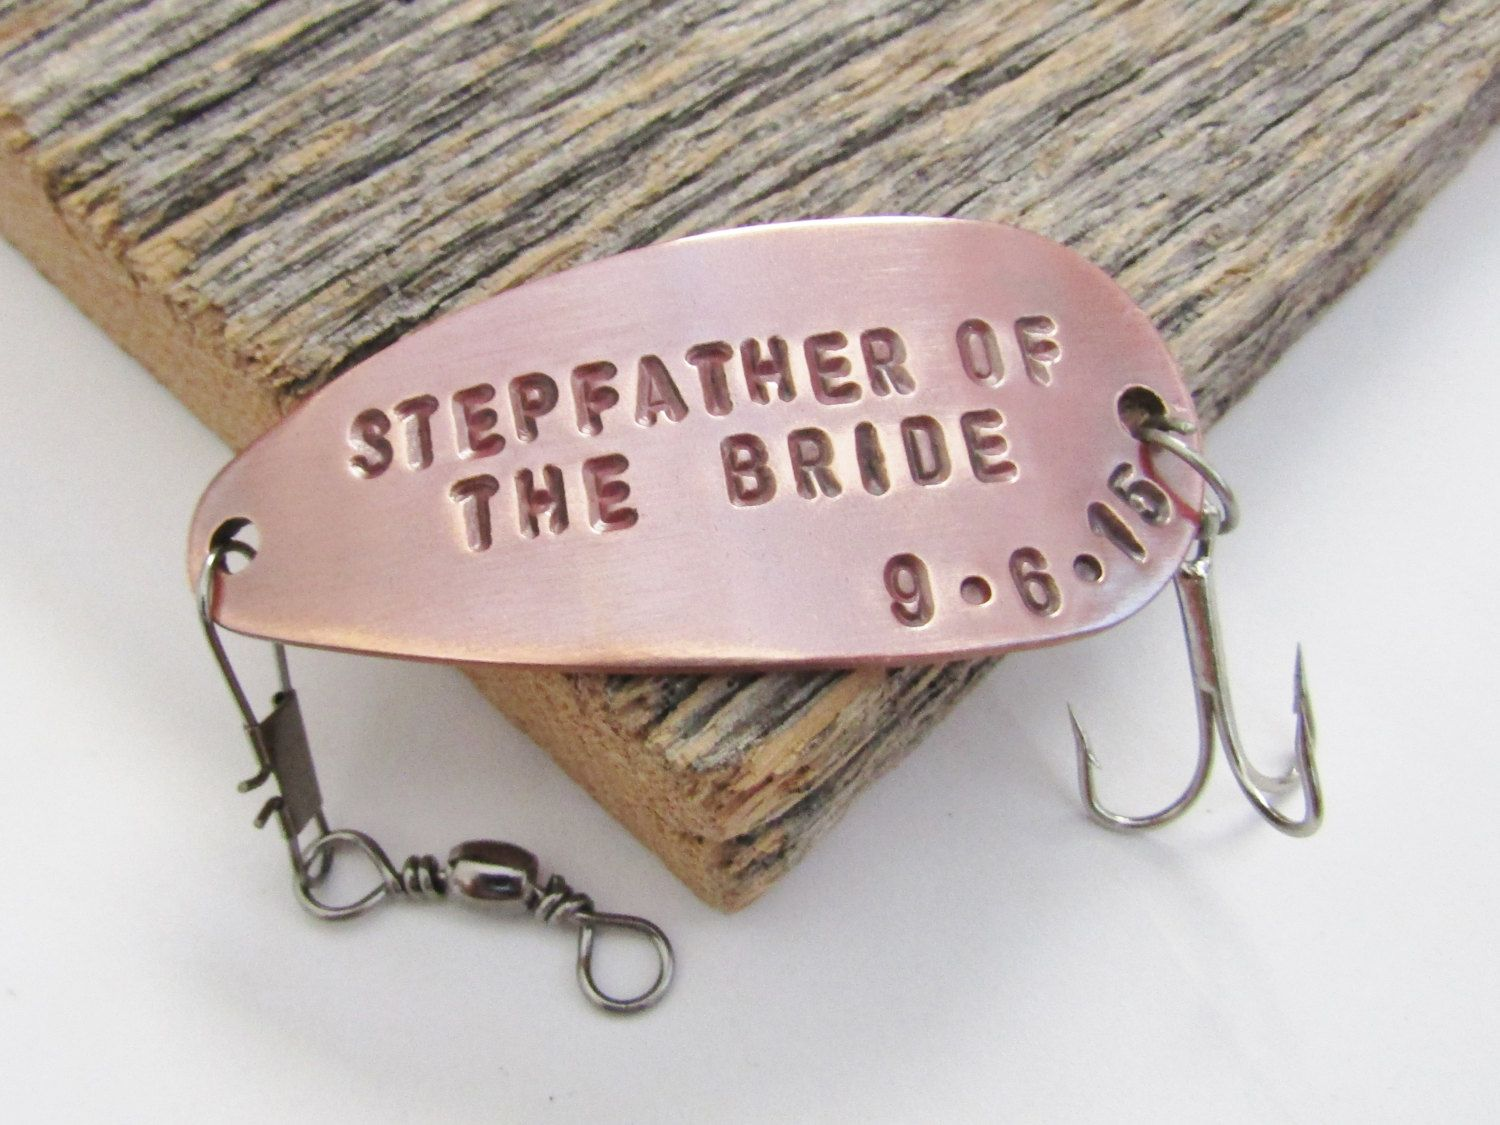 Stepfather Of The Bride Gift For Step Father Stepdaughter Steppa Idea Wedding Fishing Lure Pa